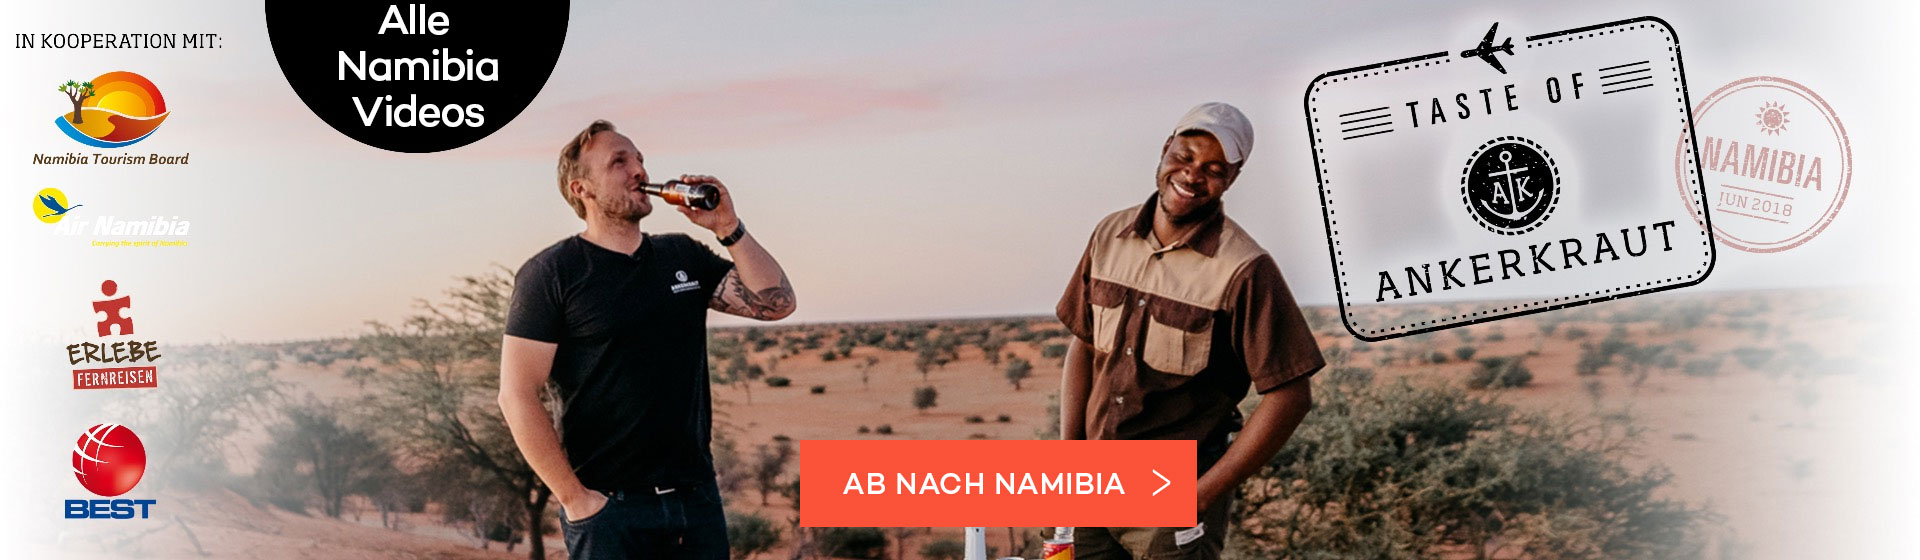 The Taste of Namibia